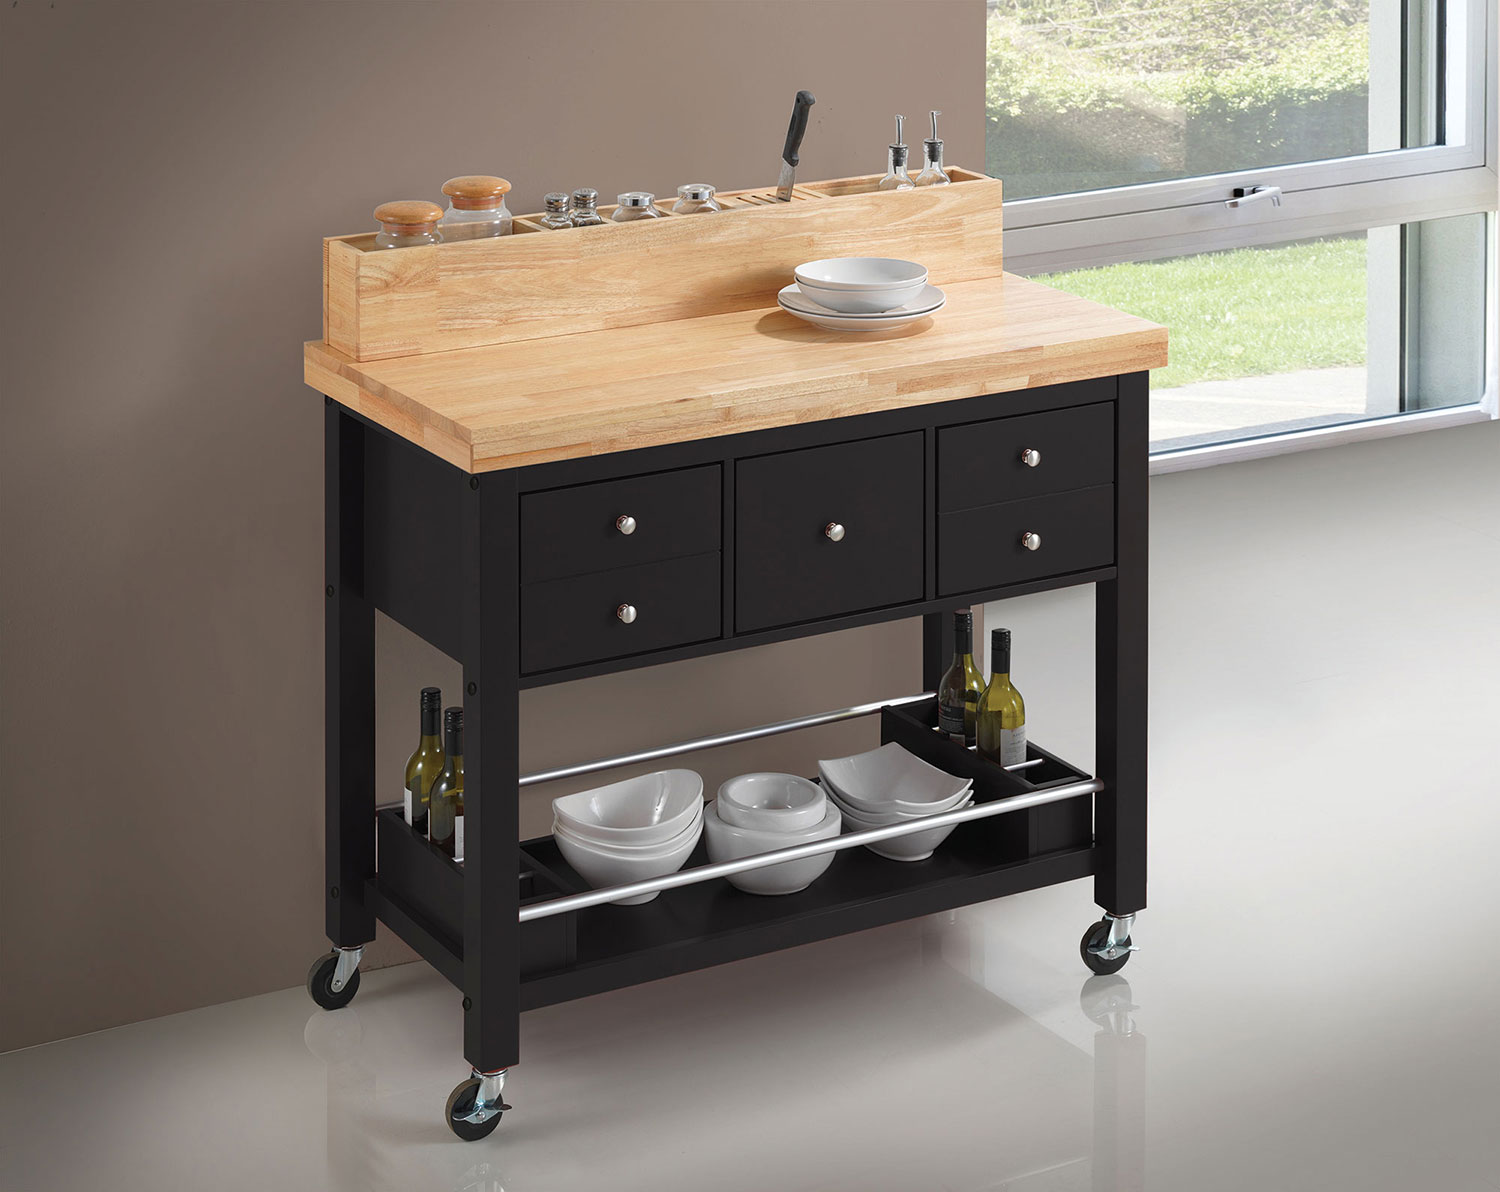 Coaster 102668 Kitchen Cart - Natural and Black